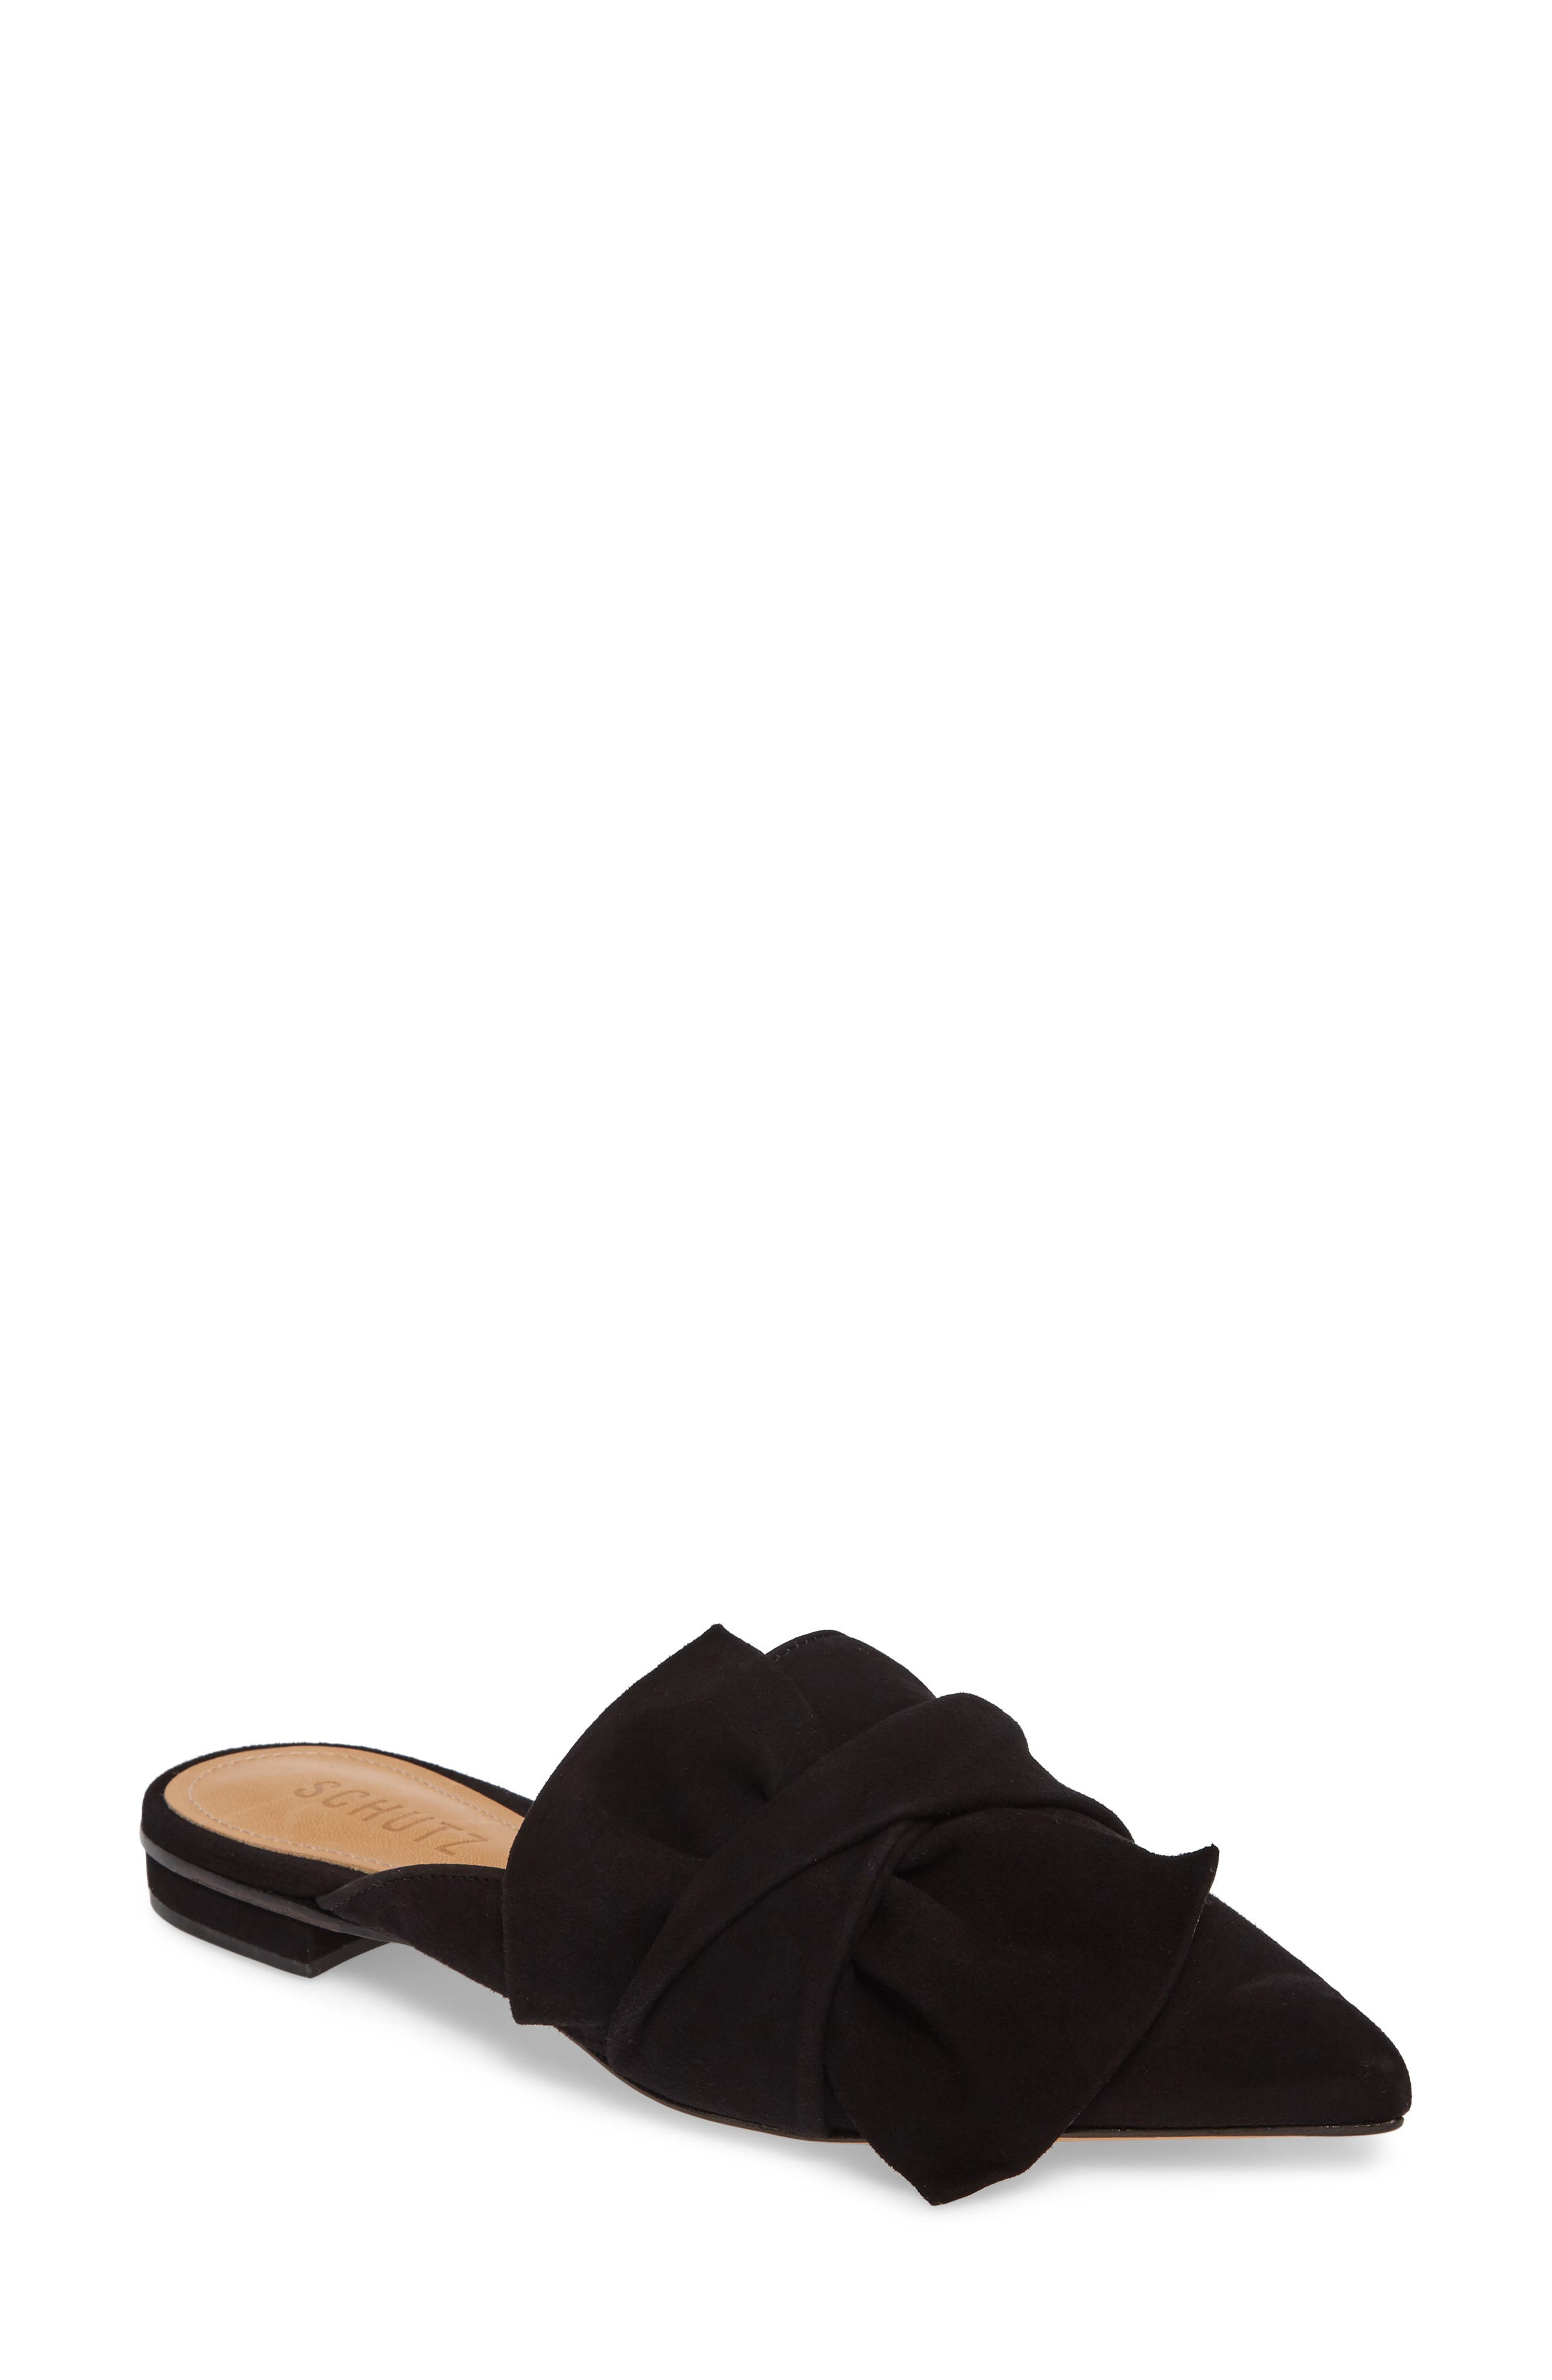 Schutz D'Ana Knotted Loafer Mule (Women)